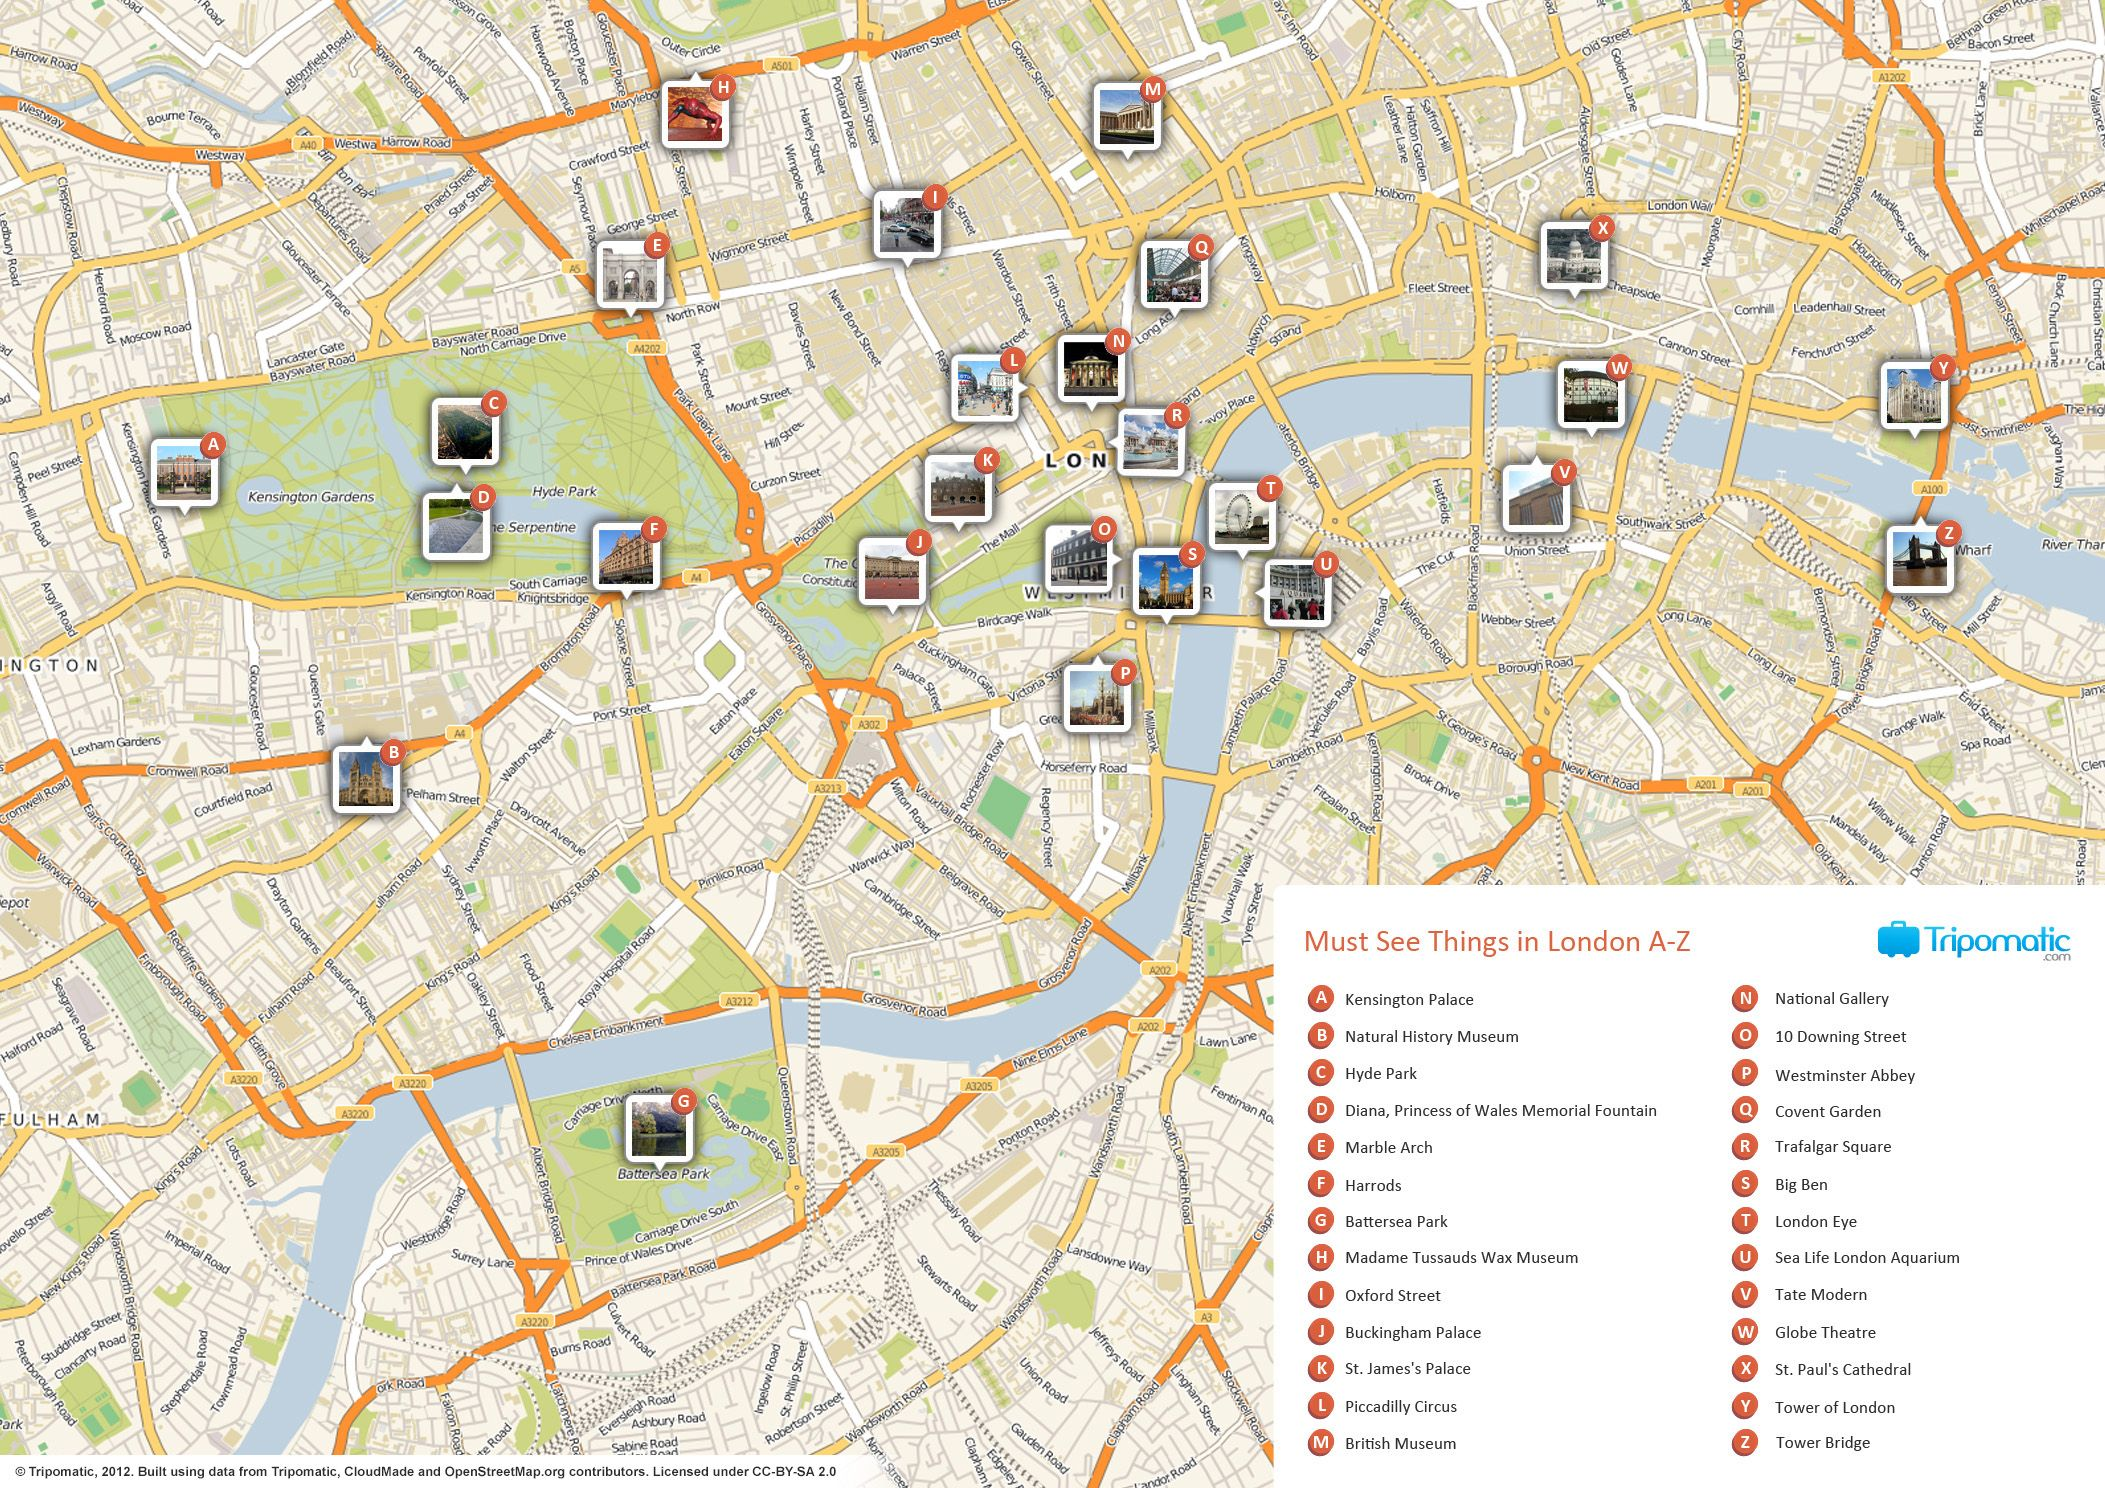 London Free Map.What To See In London Vacation Ideas London Attractions London